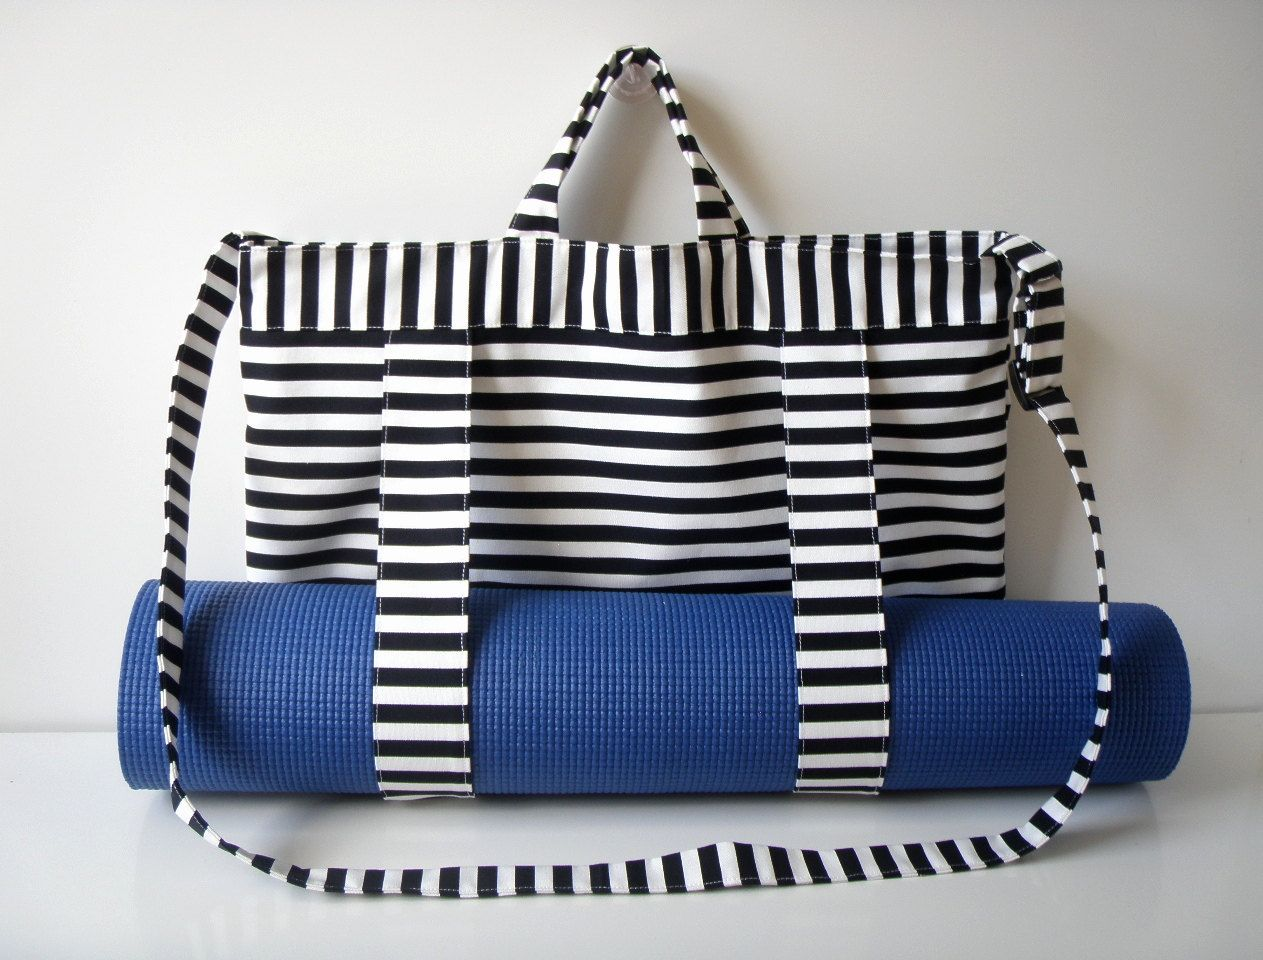 Yoga Mat Tote Bag Black White Stripes With Straps Handmade